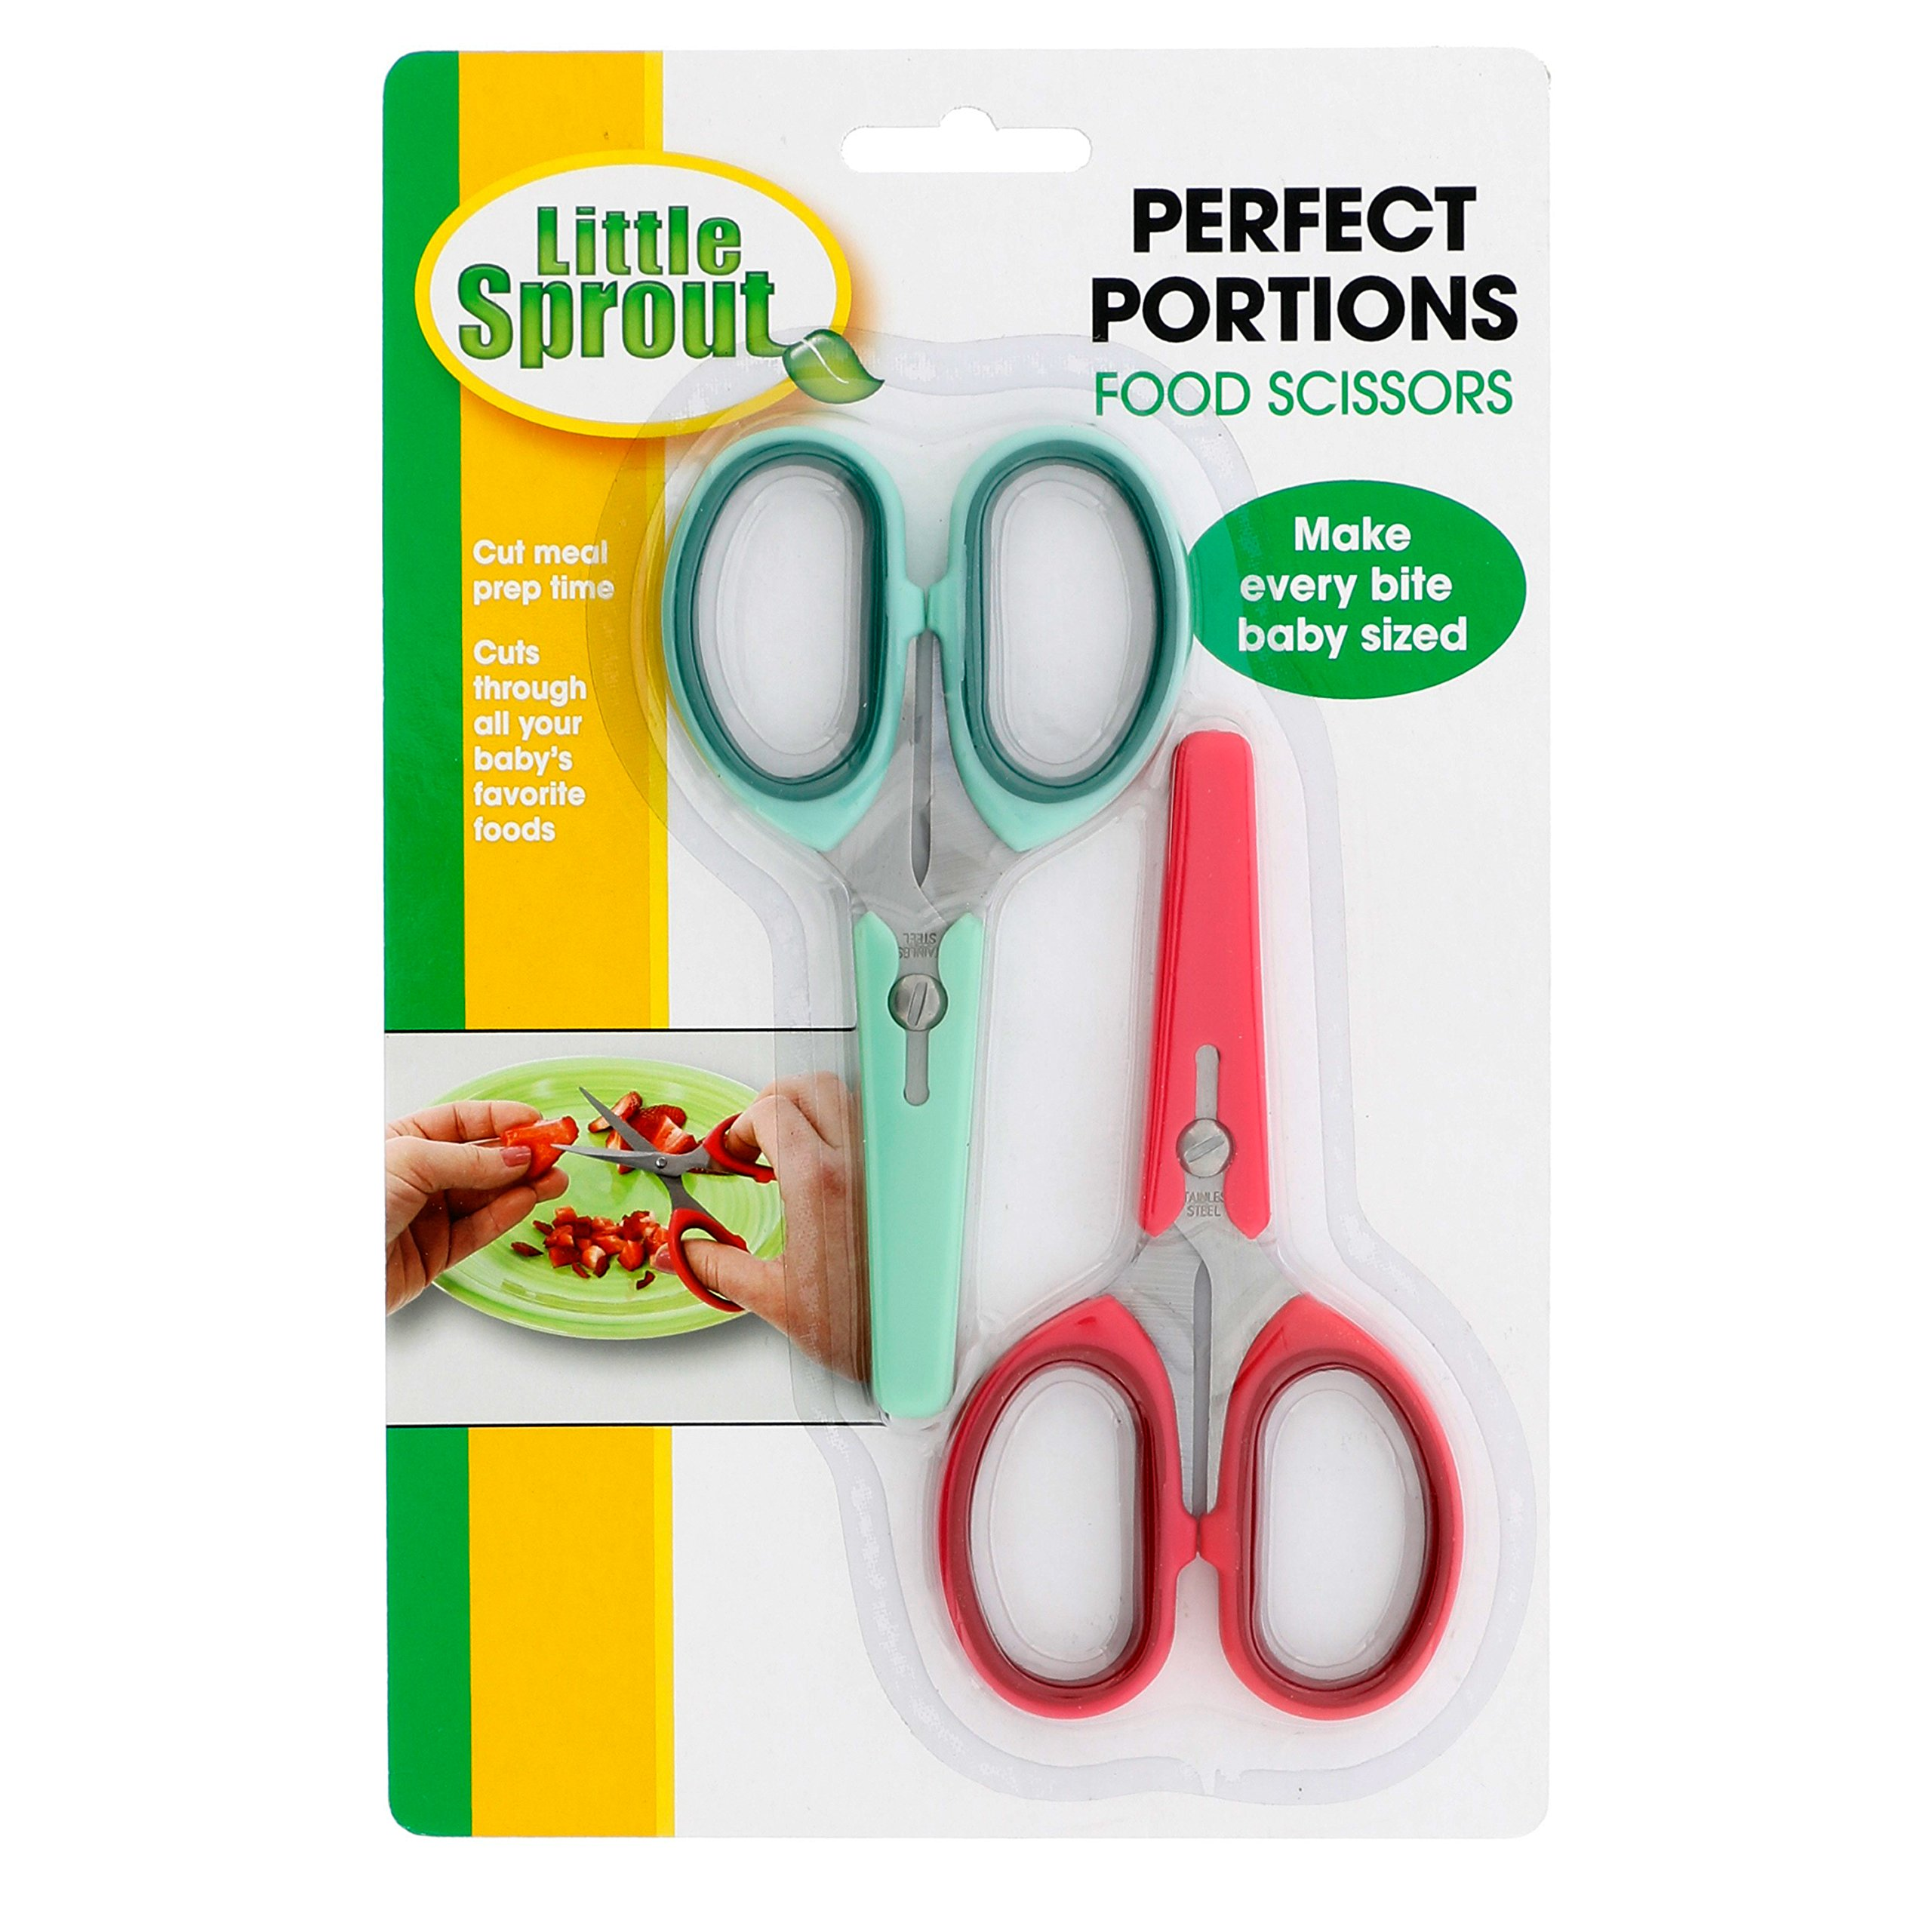 Baby Food Scissors 2 Pack w Covers- Safety Stainless Steel Shears to Make Every Bite Baby Sized and Safe by Sprout Cups